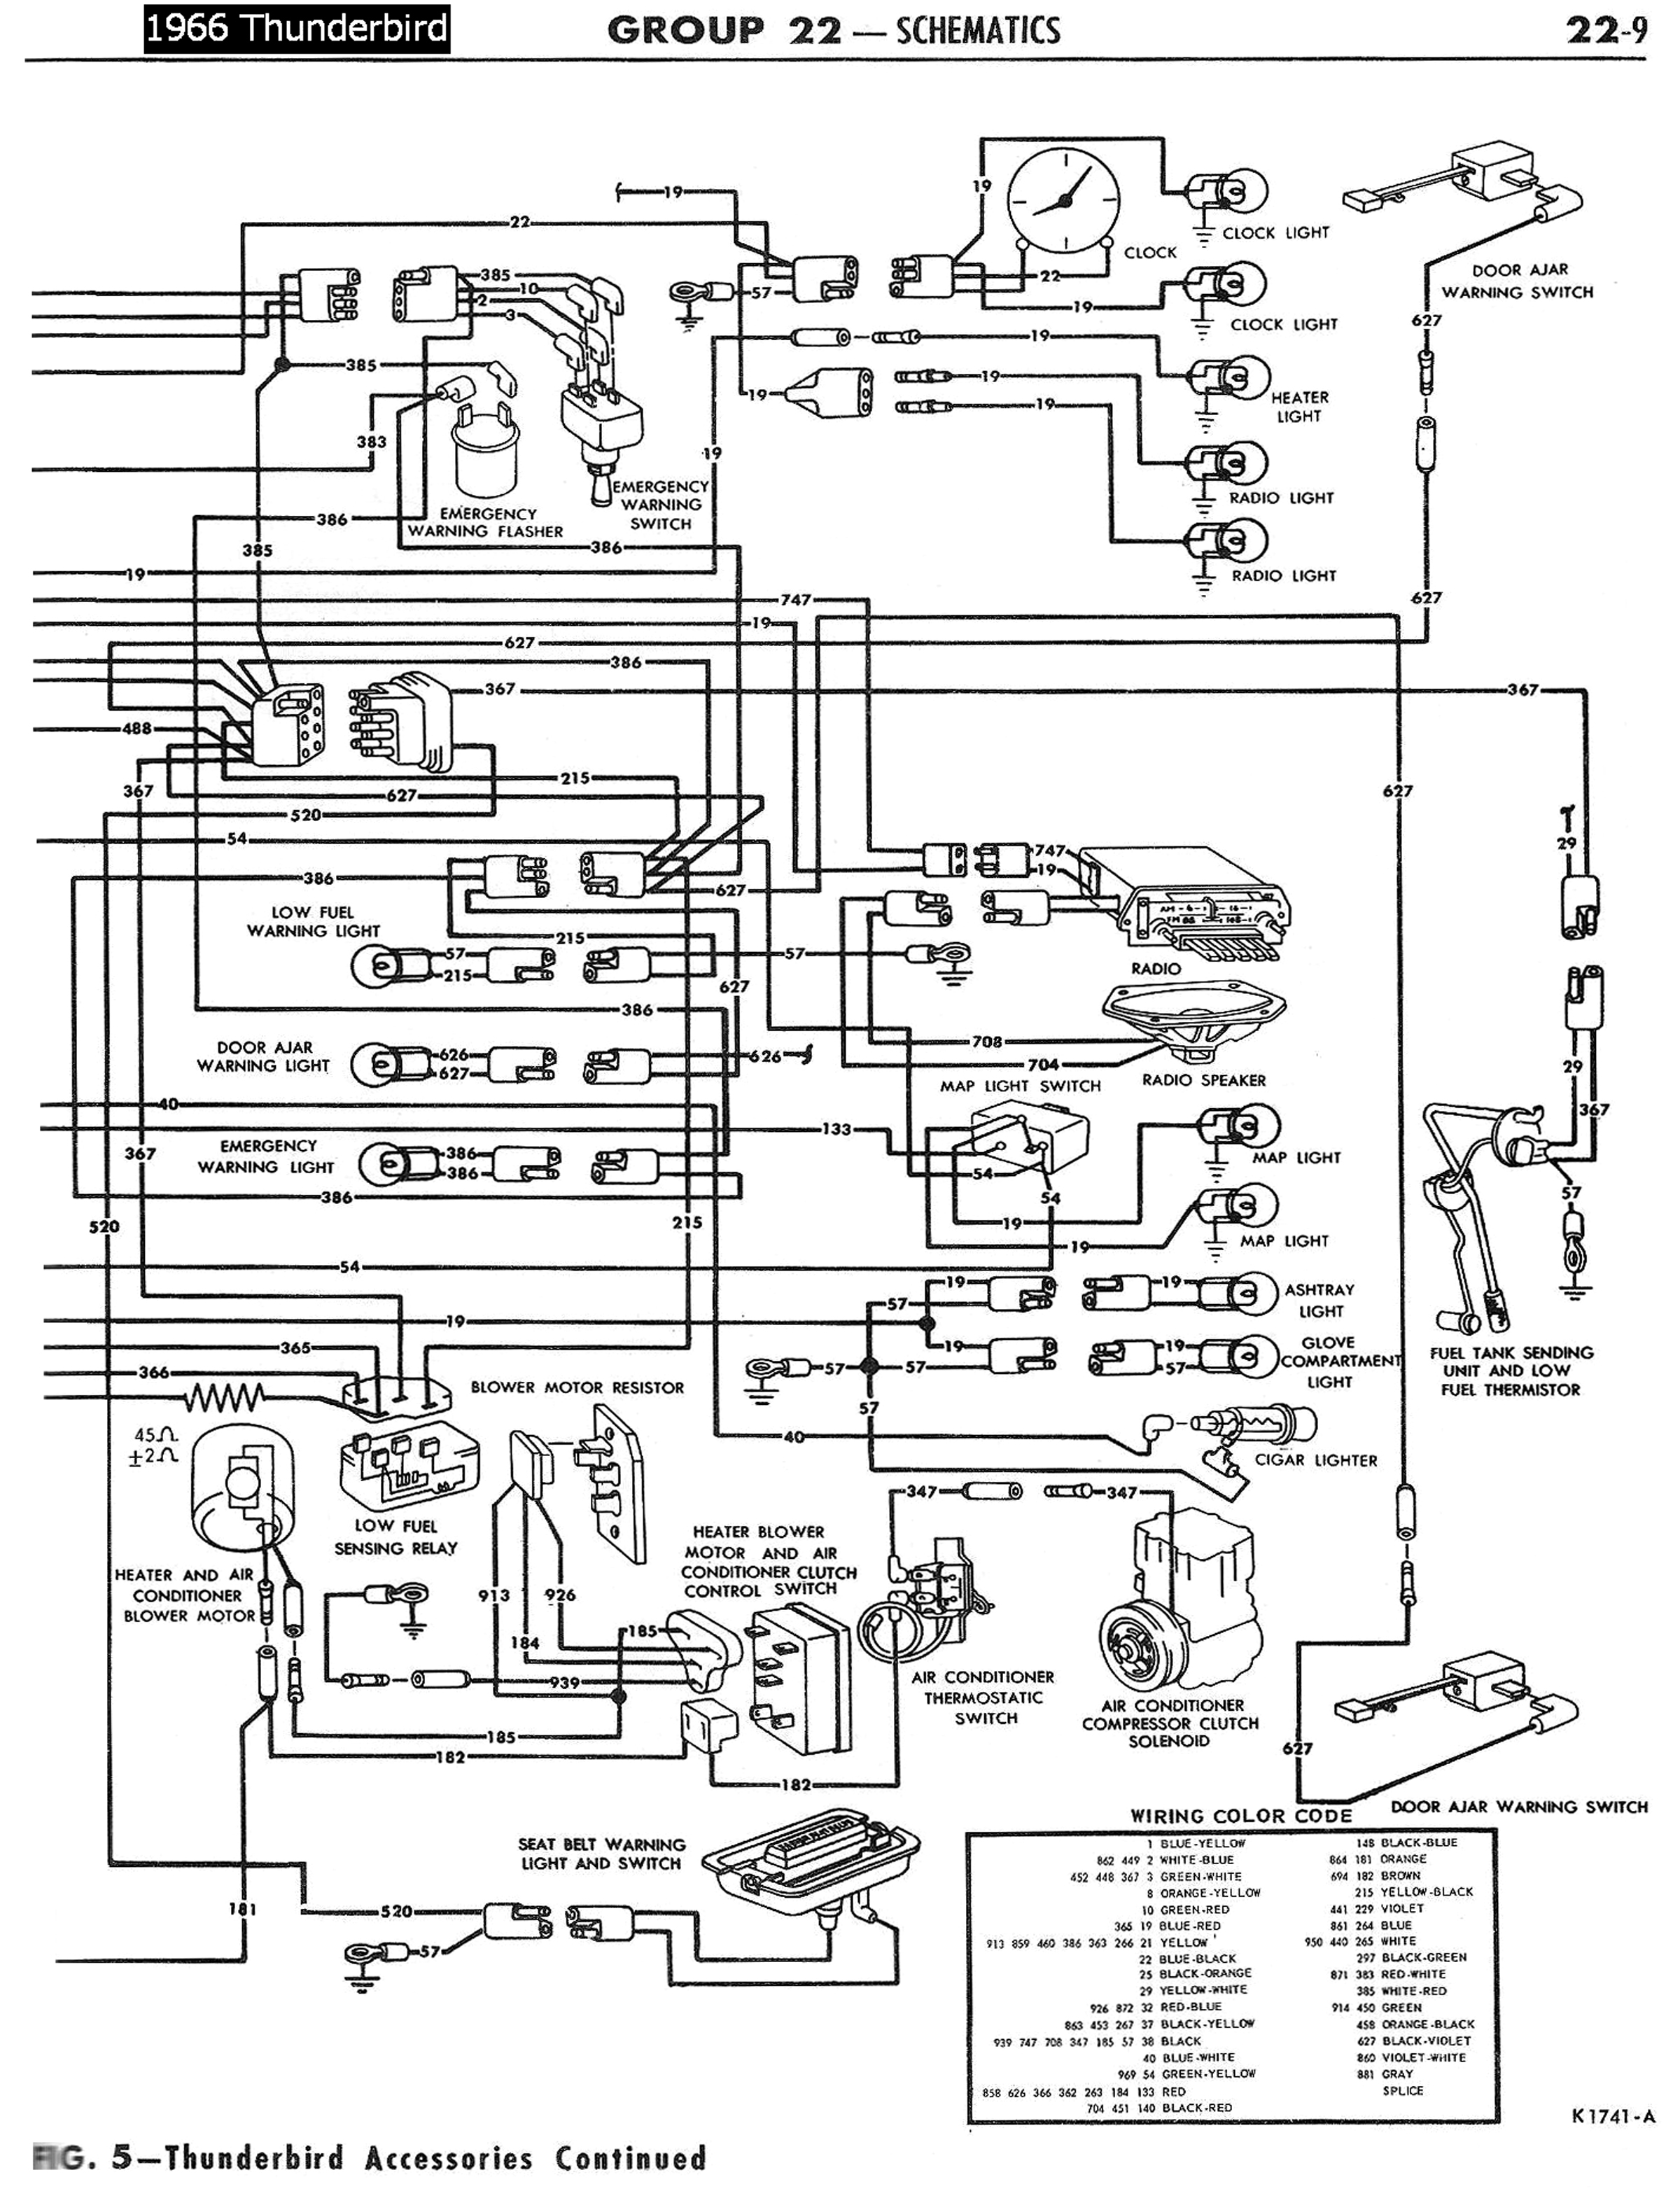 1966 Thunderbird Wiring Diagram Schematics 65 Ford 1958 68 Electrical 1965 Lincoln